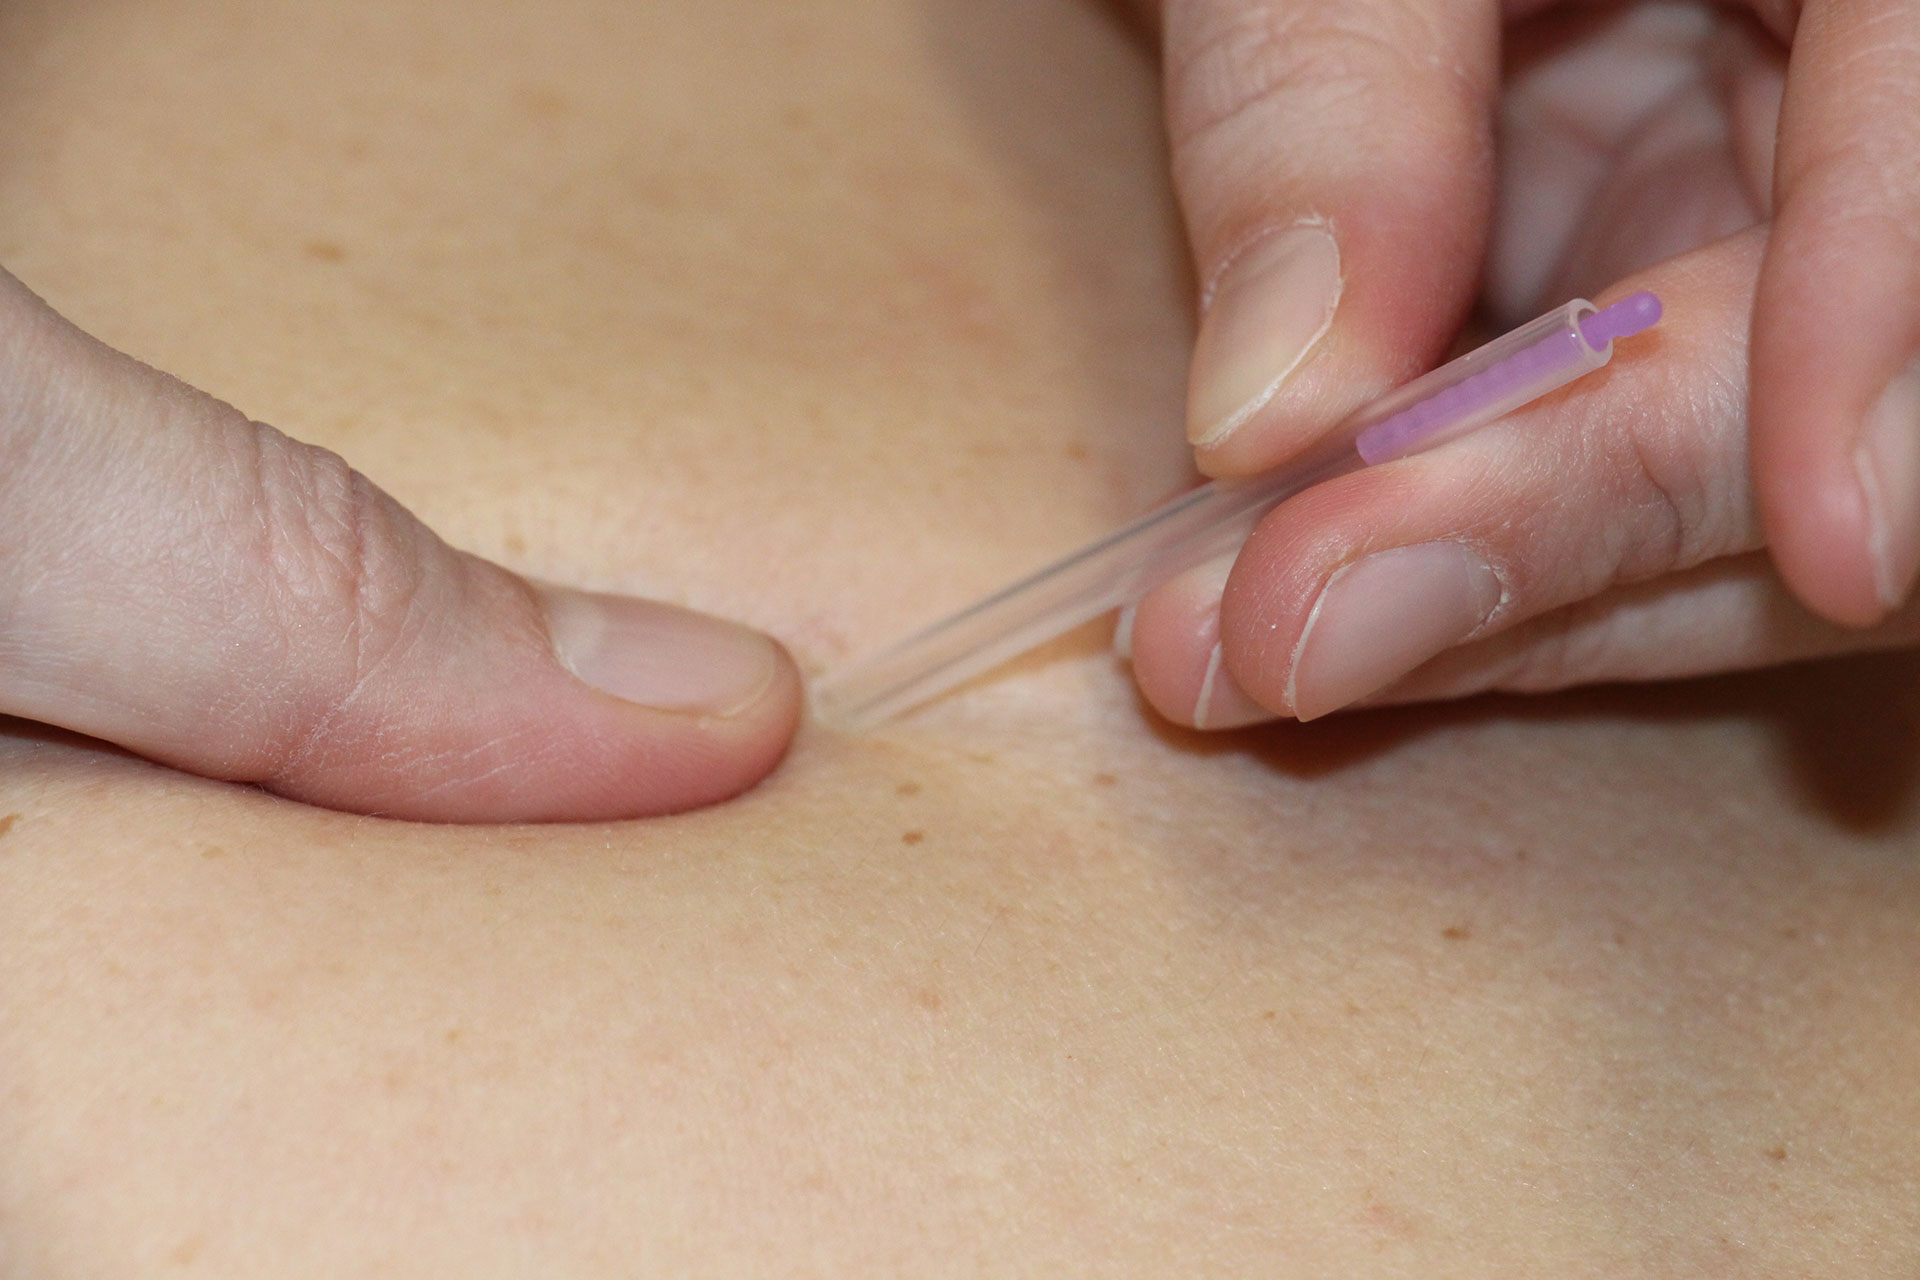 Dry Needling behandeling door Brigitte Dooren